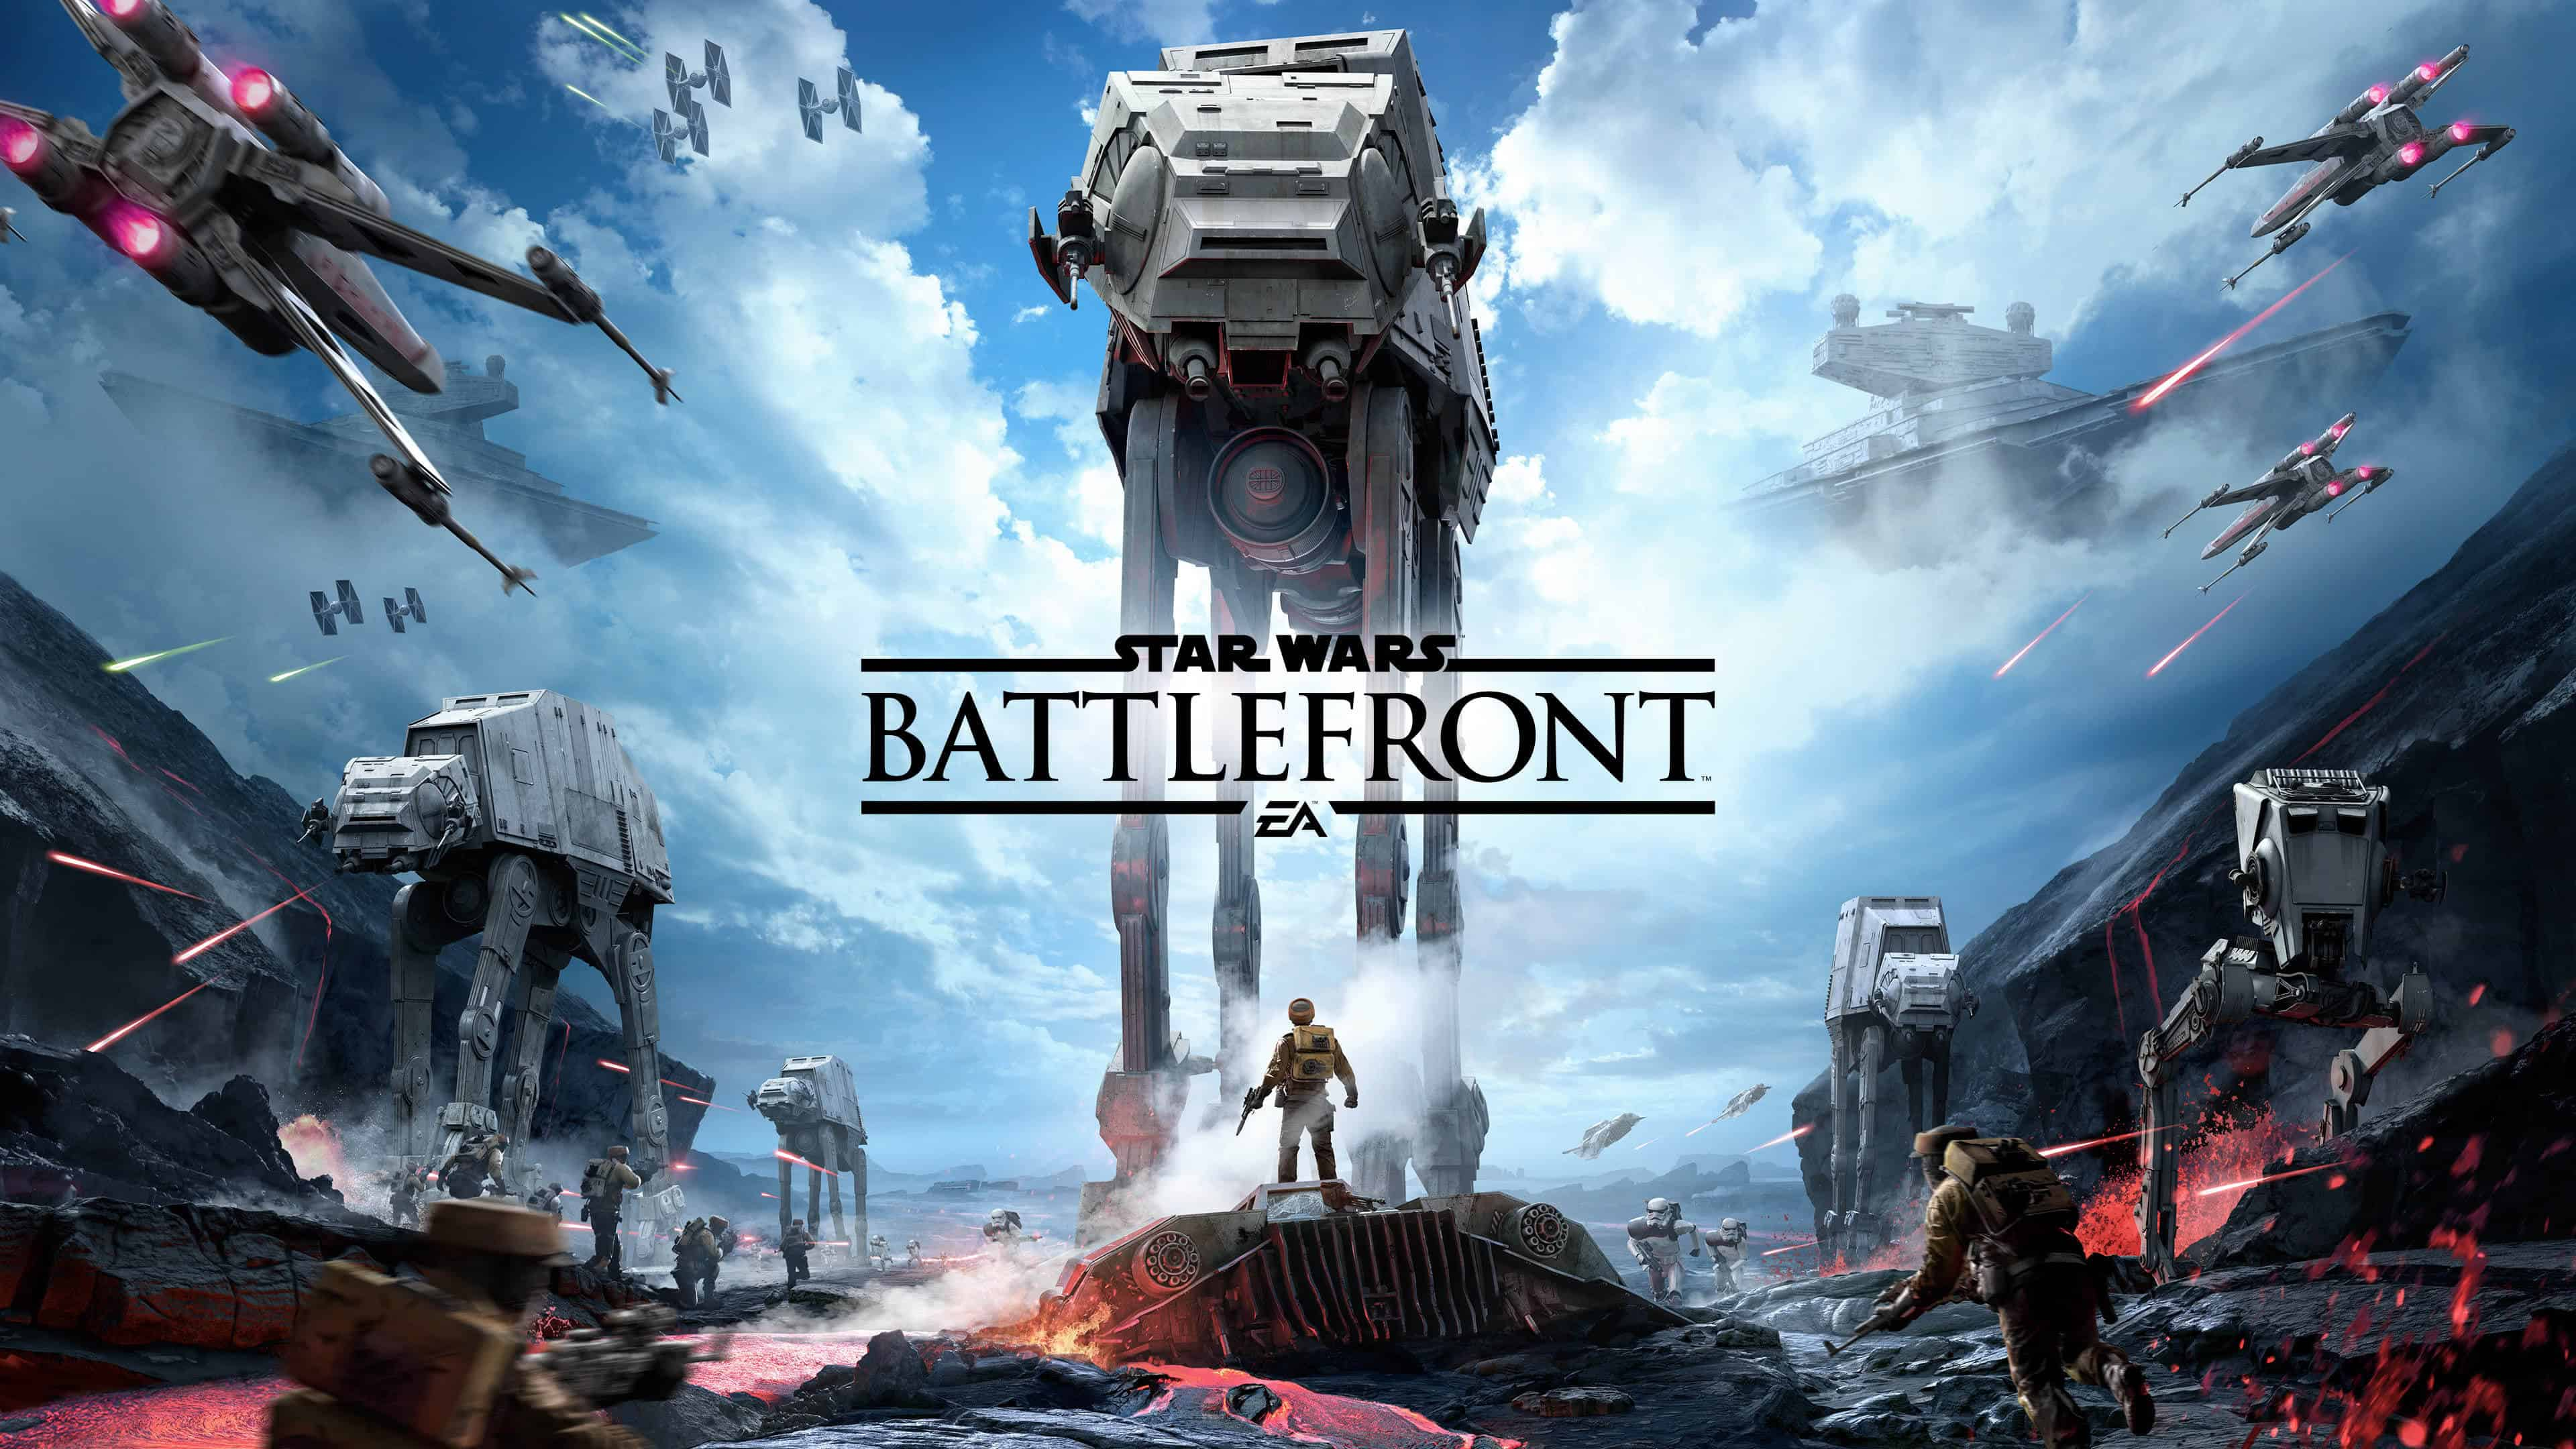 star wars battlefront uhd 4k wallpaper